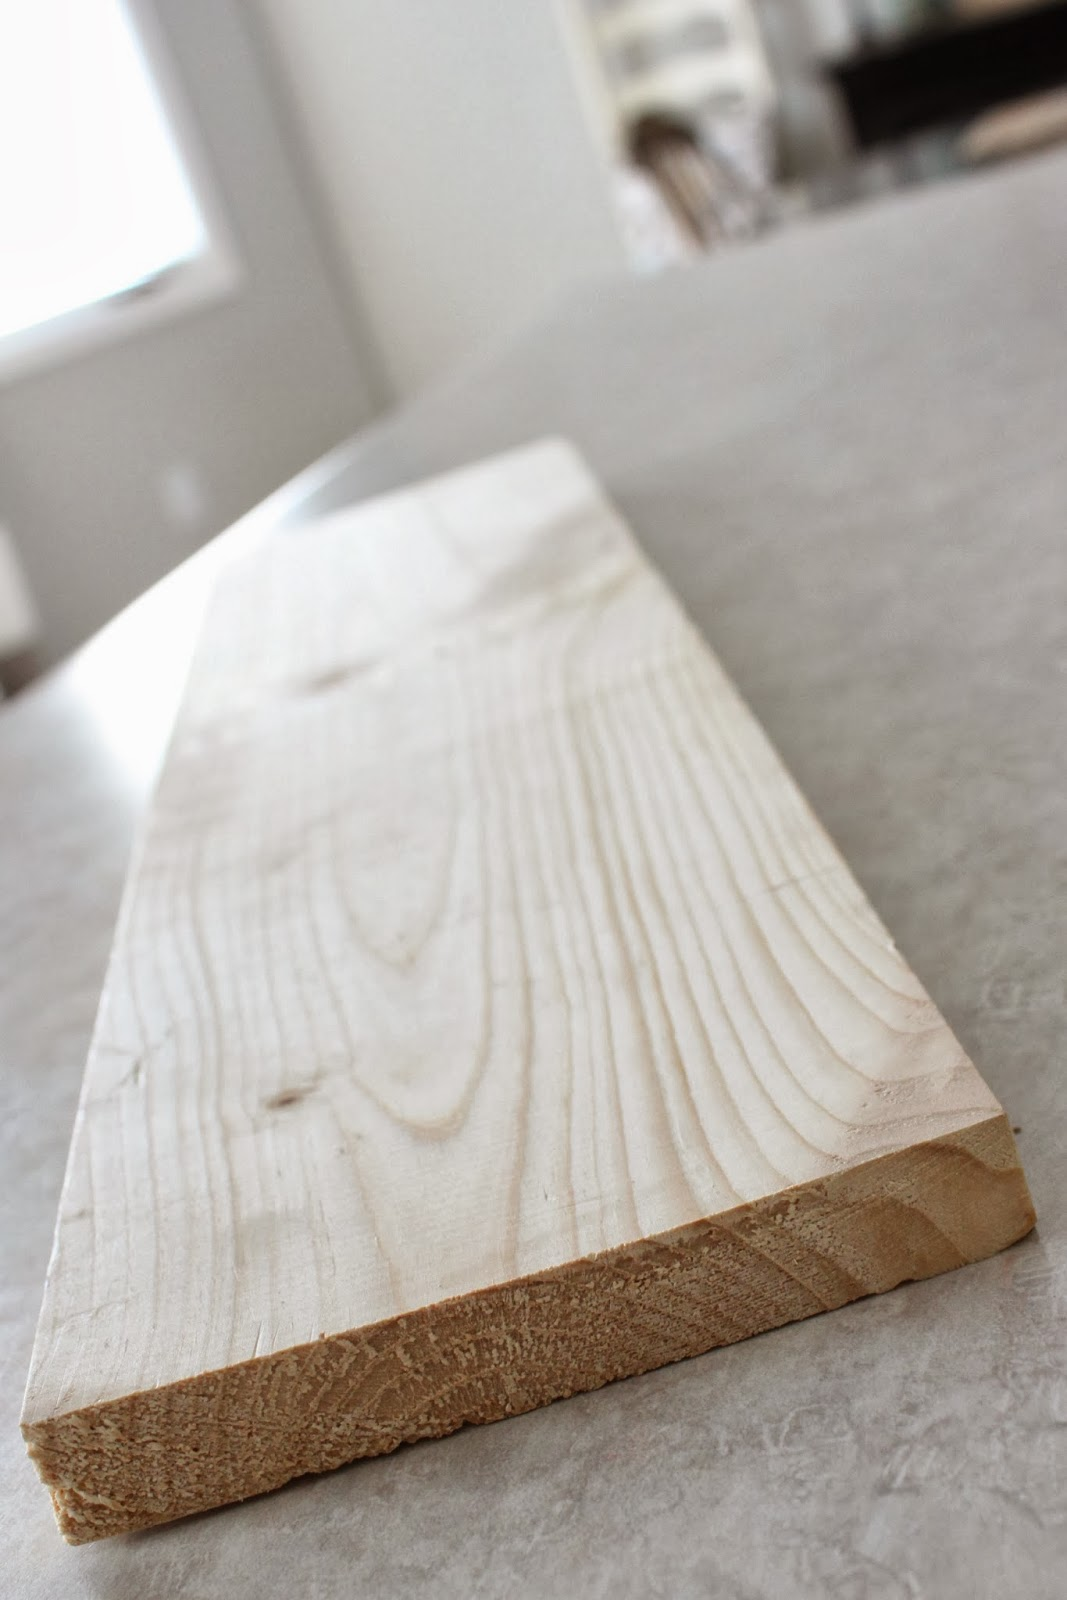 A wooden board on the table.